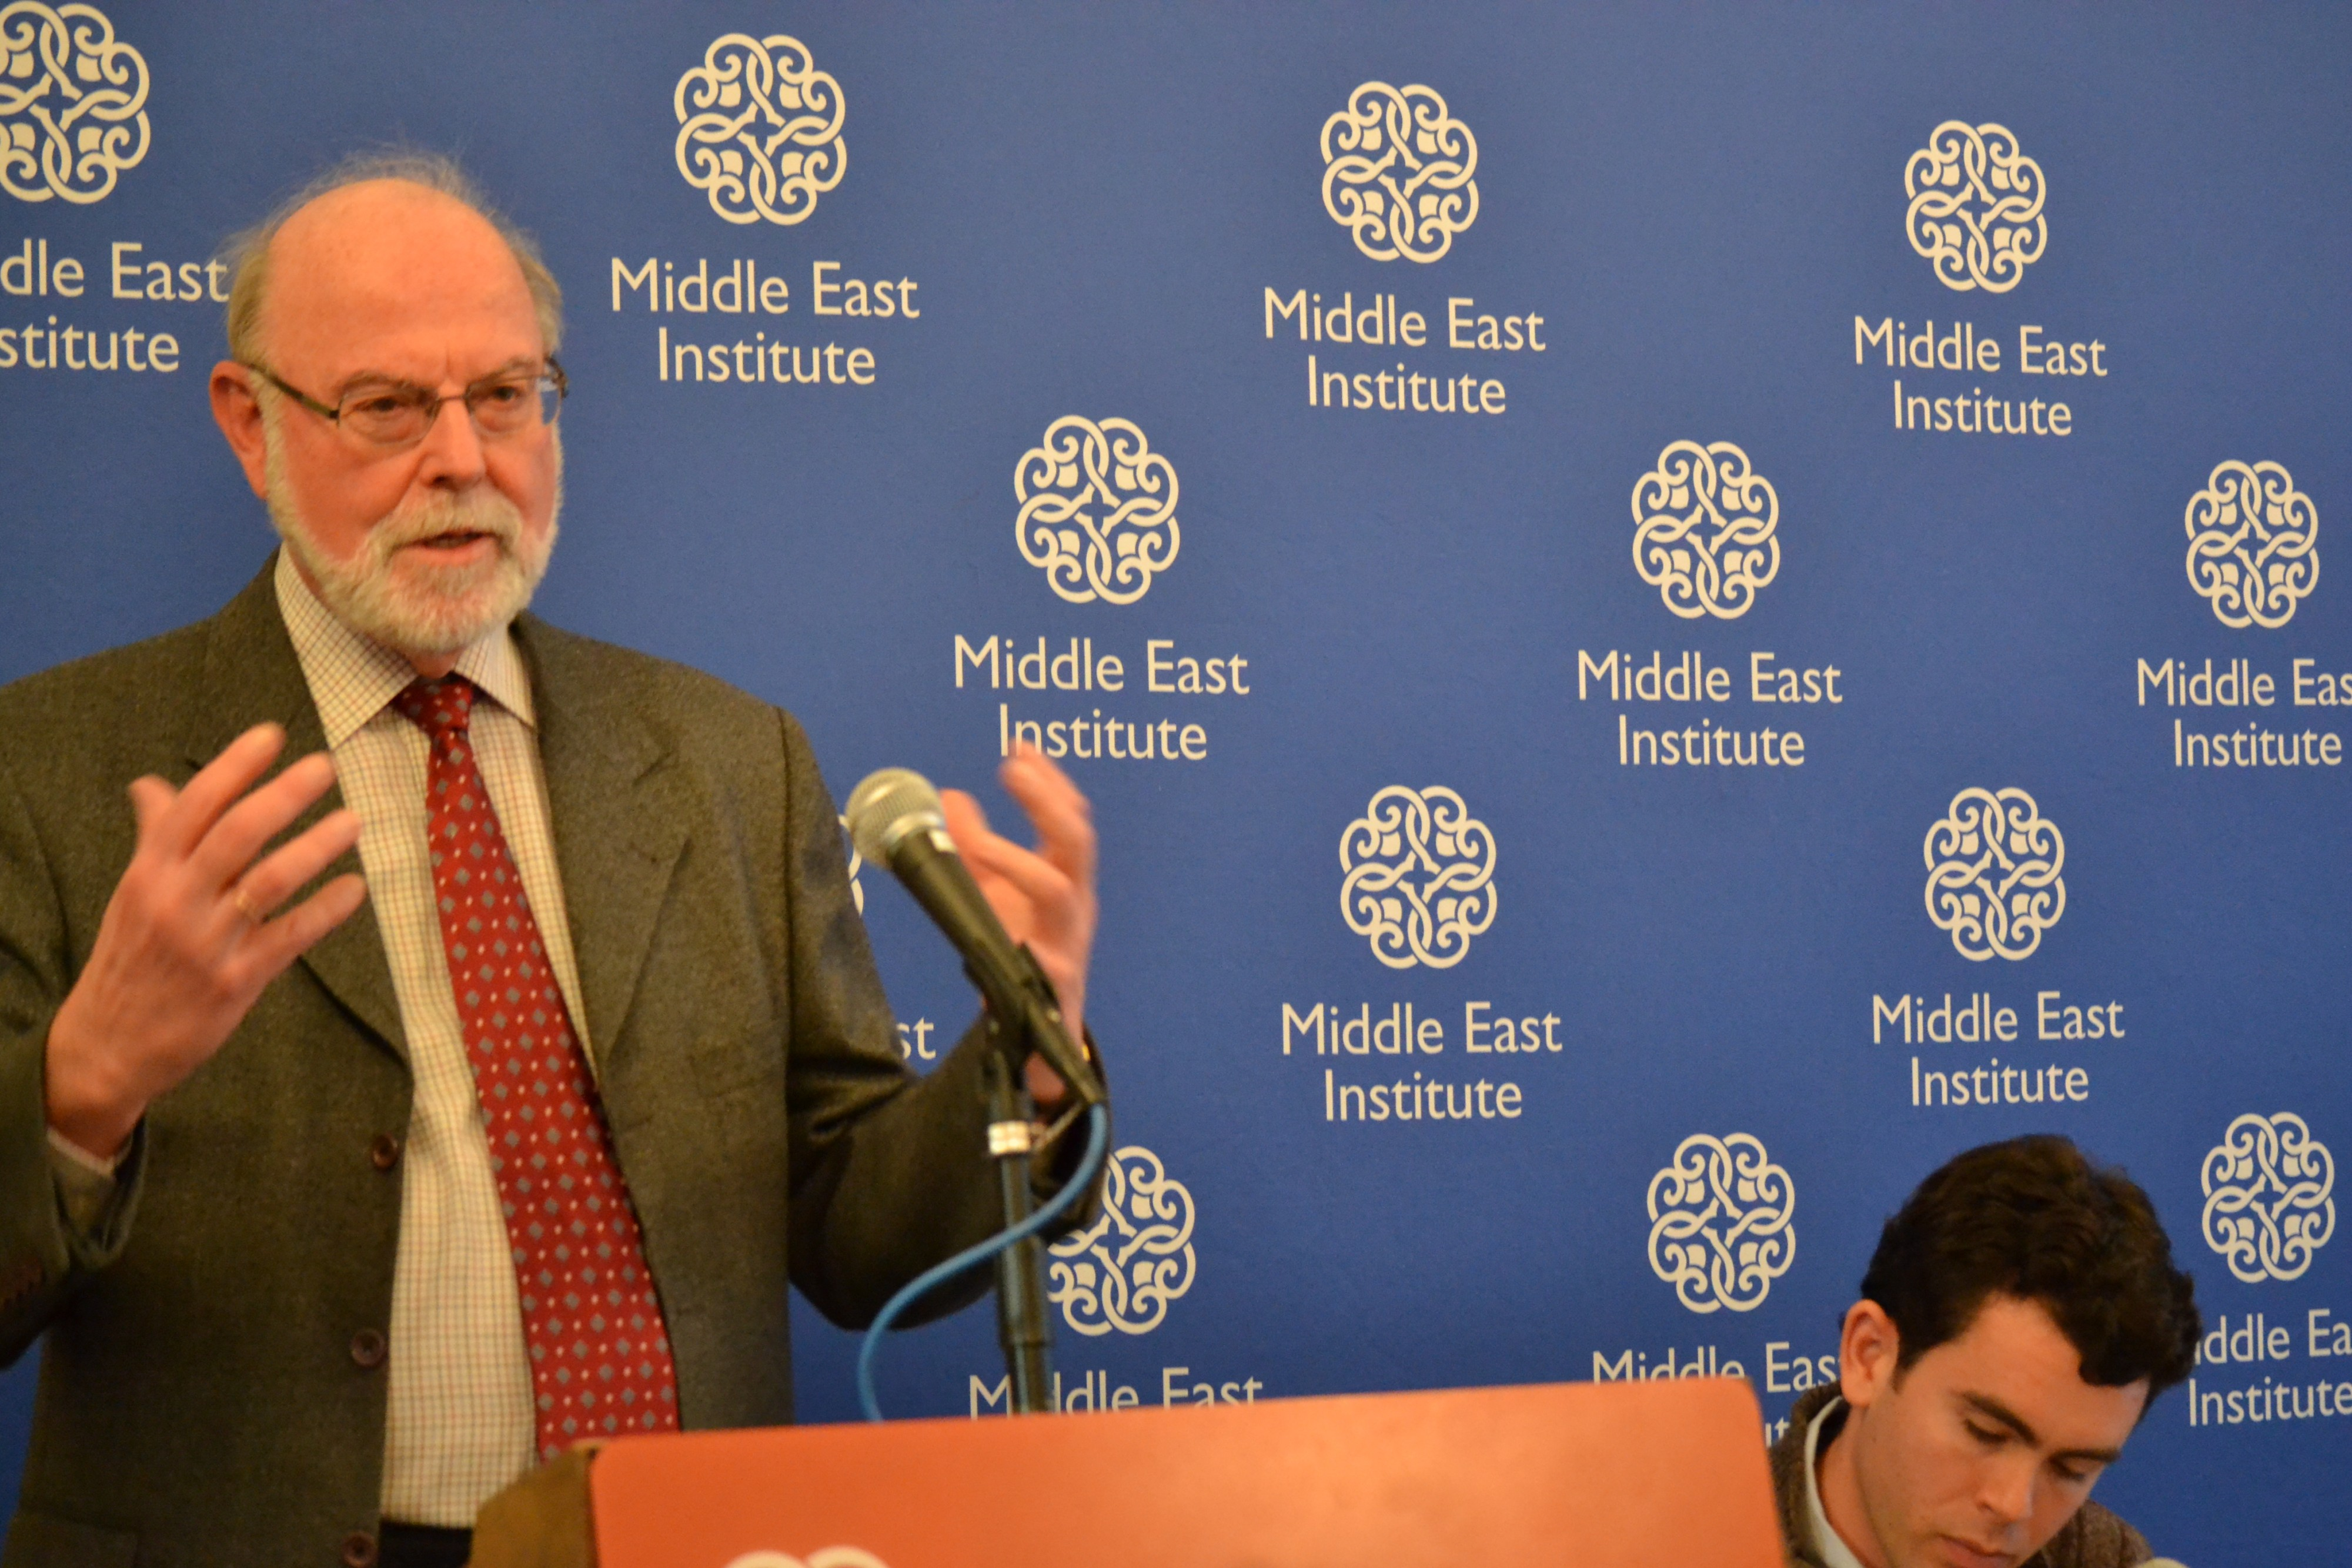 an analysis of the conflict and turmoil in the middle east The regional contestation between saudi arabia and iran is moving westwards the events around civil war see: knudsen, a and m kerr (eds) lebanon after the cedar revolution, london: hurst & company, 2012 bahout, j, eye of the storm carnegie the islamic state and beyond: a brief analysis.